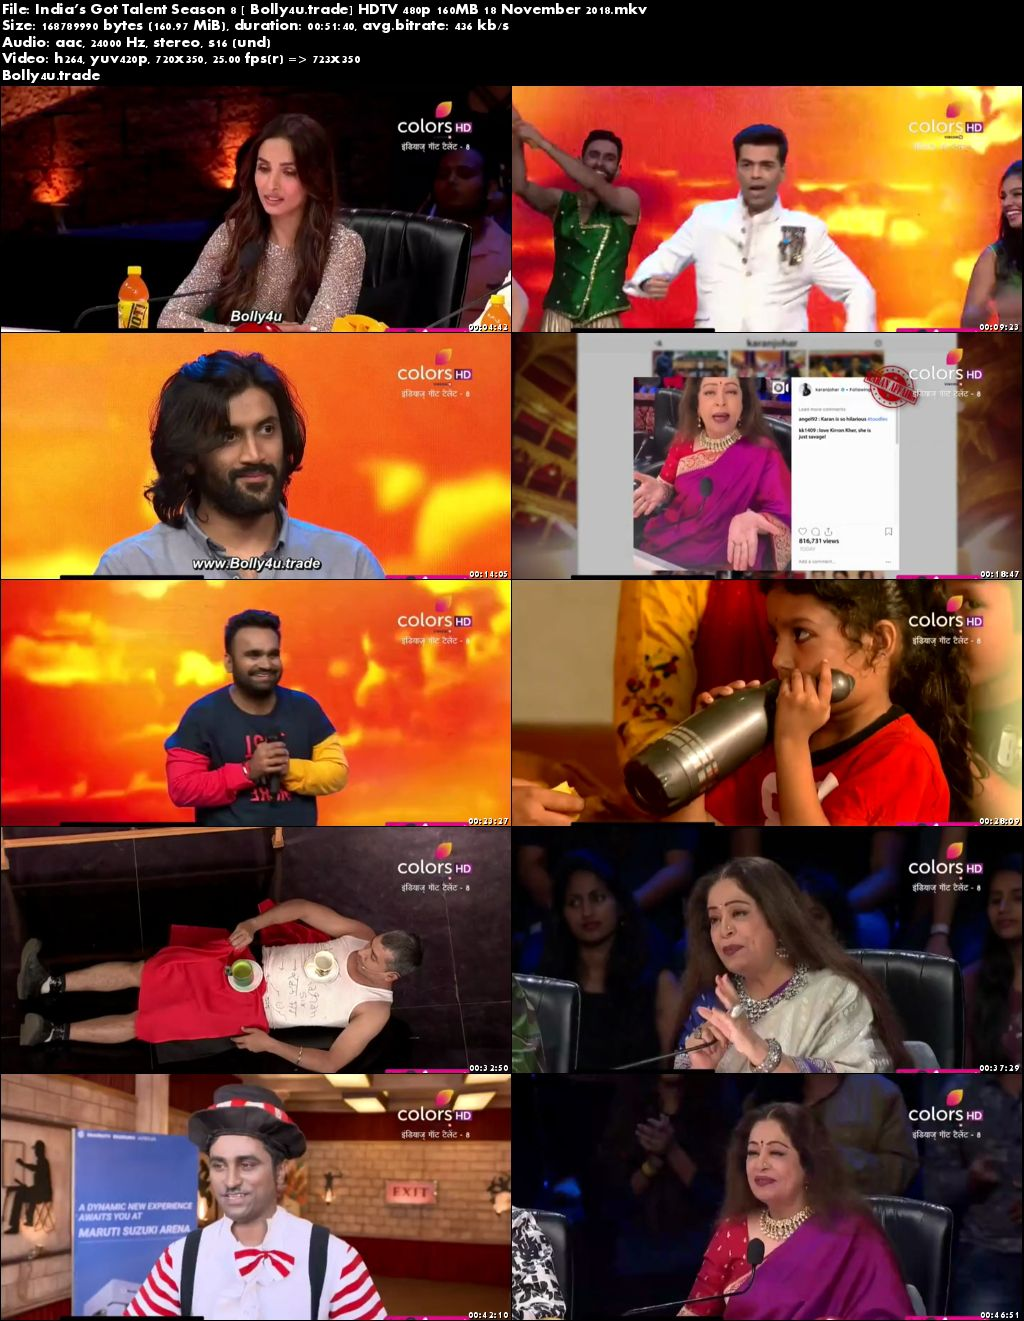 Indias Got Talent Season 8 HDTV 480p 160MB 18 November 2018 Download